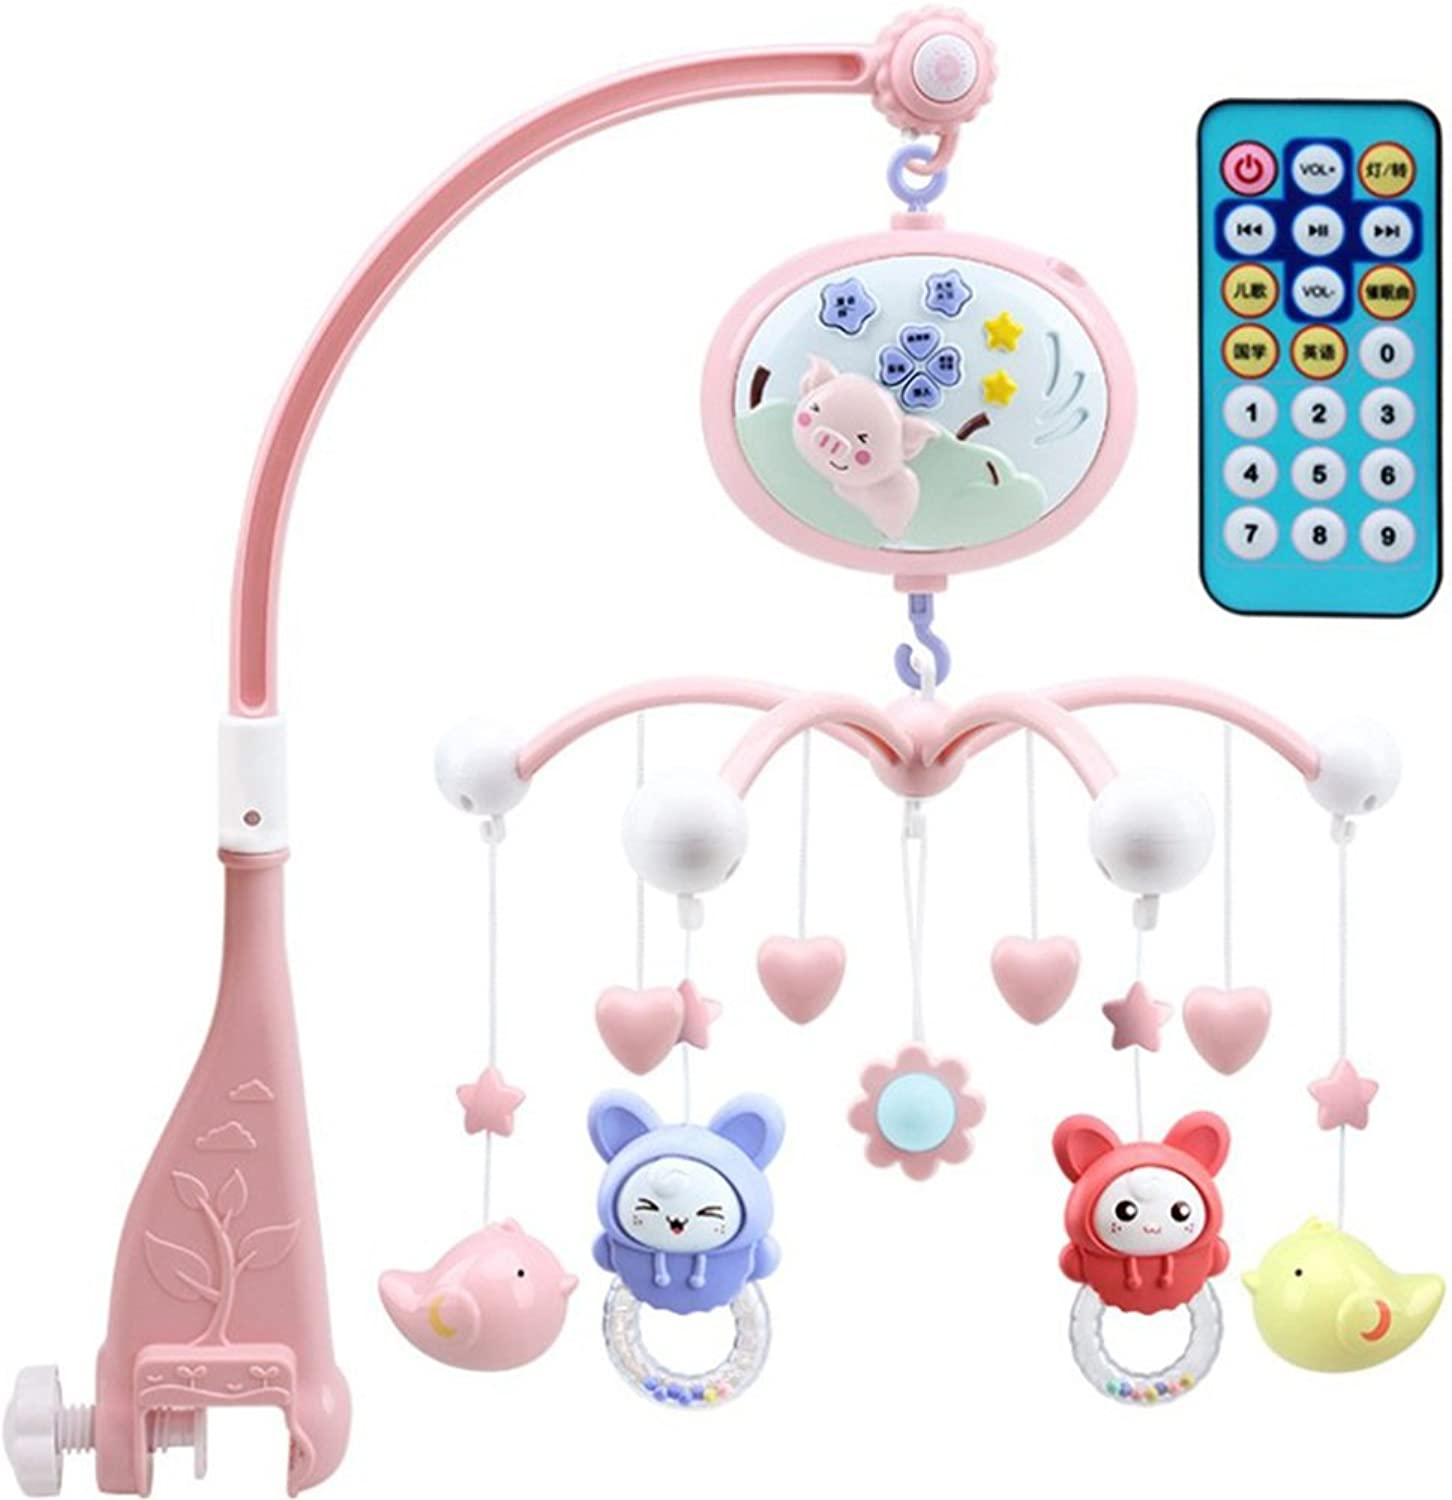 TOYANDONA Baby Mobile for Crib with Music Lights Timing Function Projection for Babies boy Girl toddles Sleep (Pink Pig)